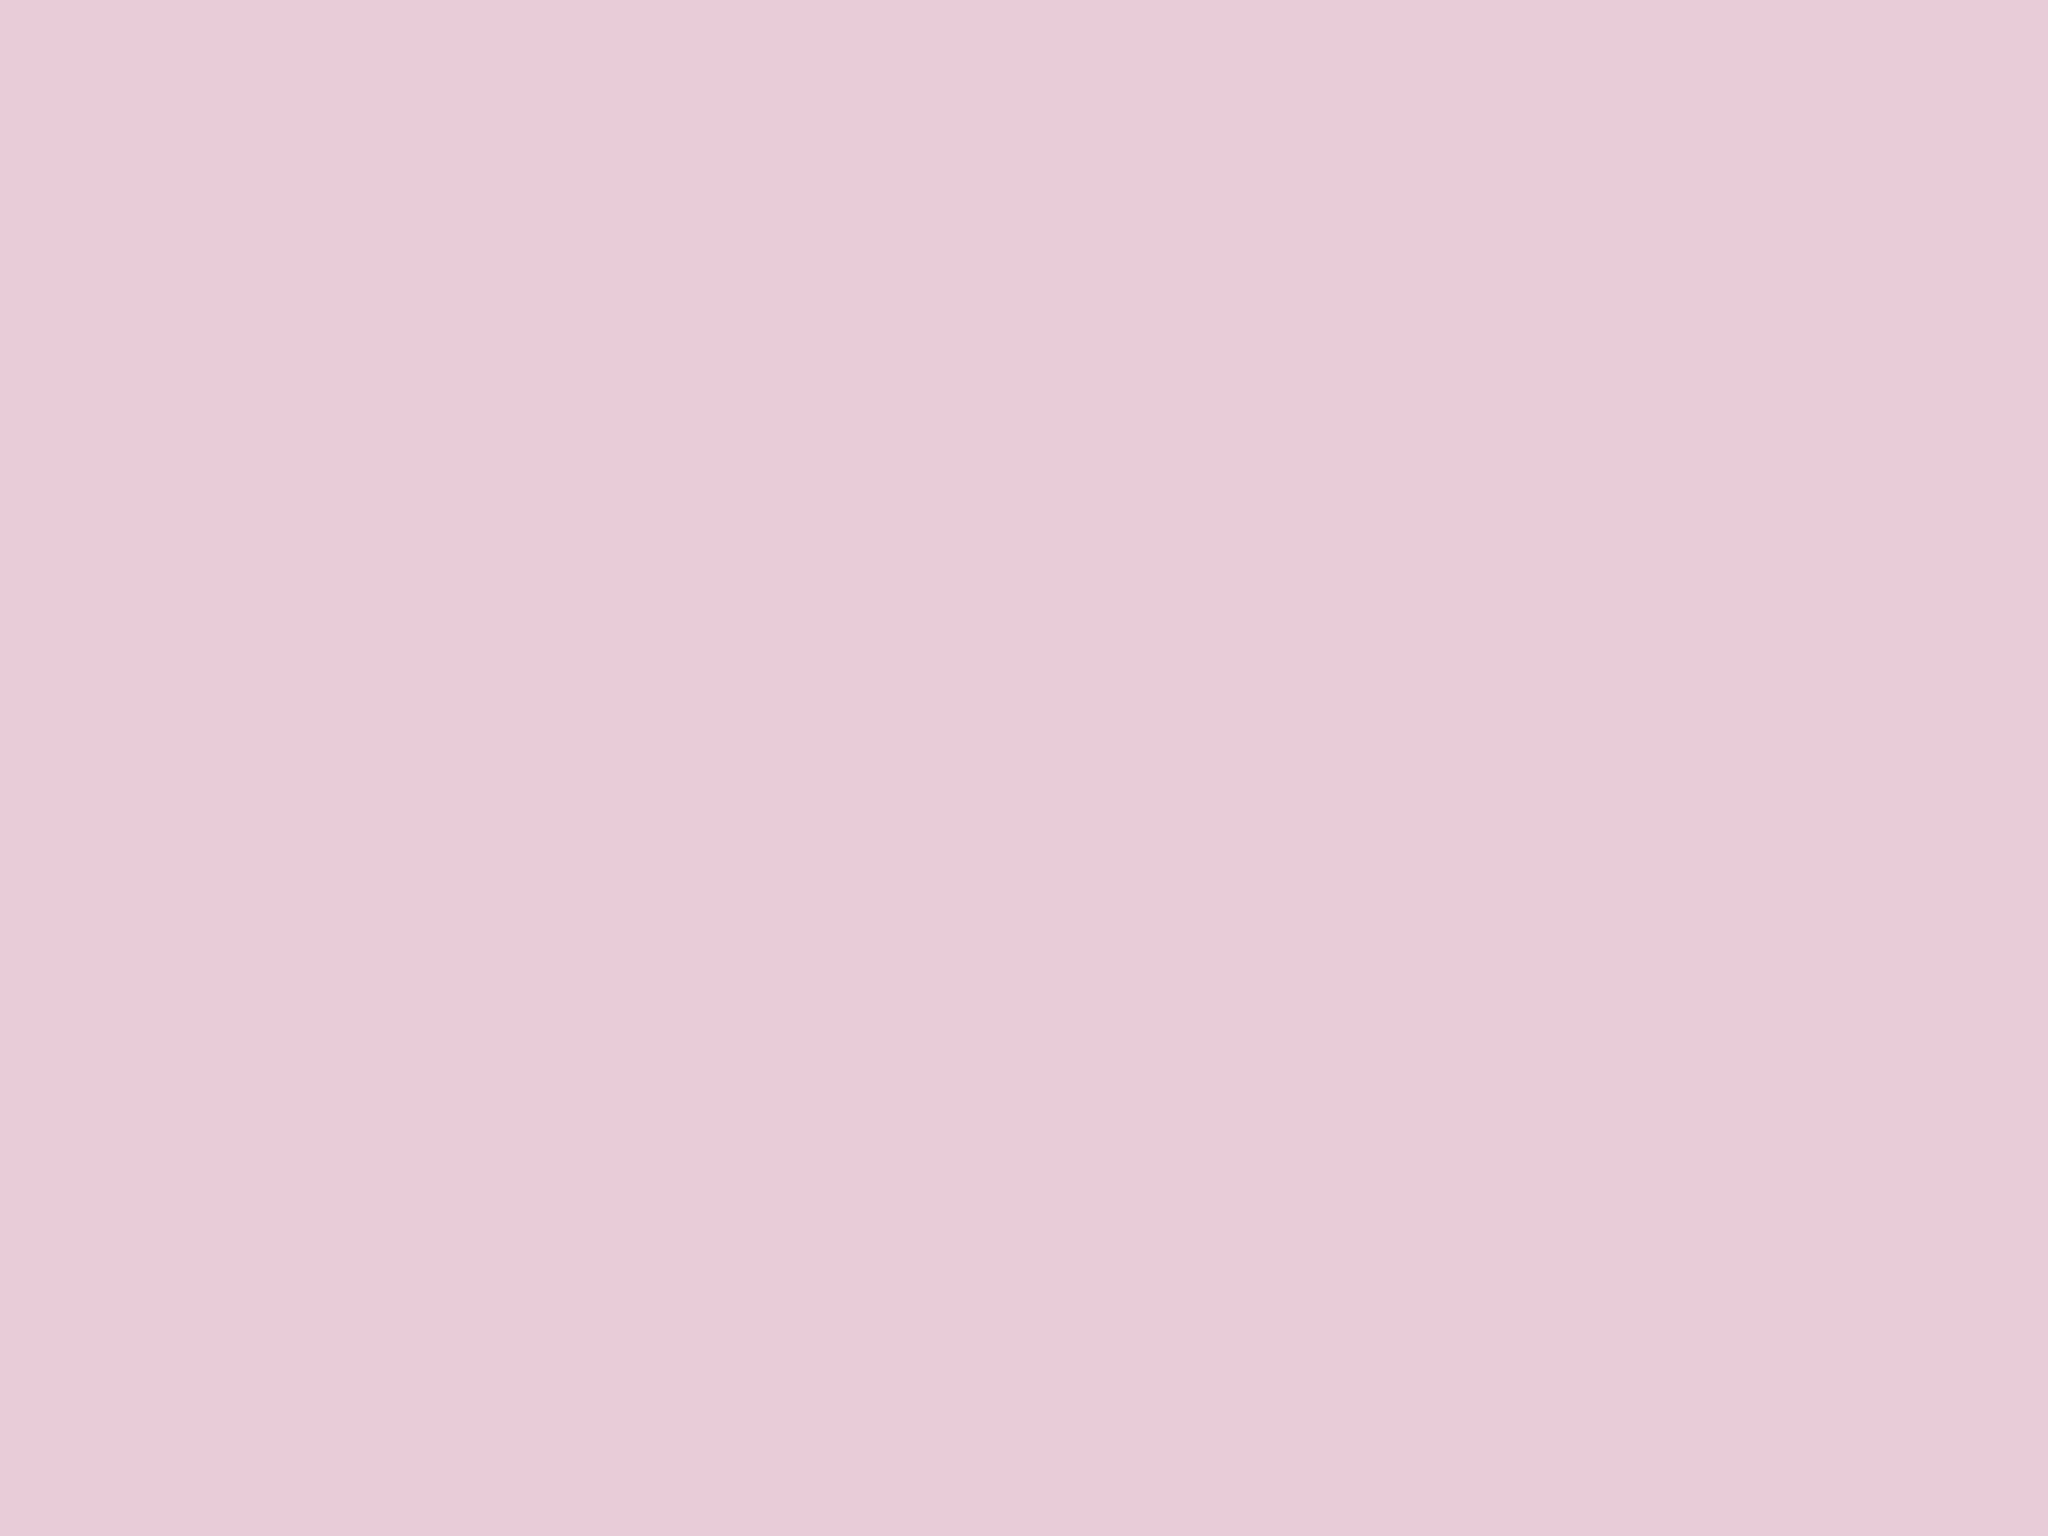 2048x1536 Queen Pink Solid Color Background